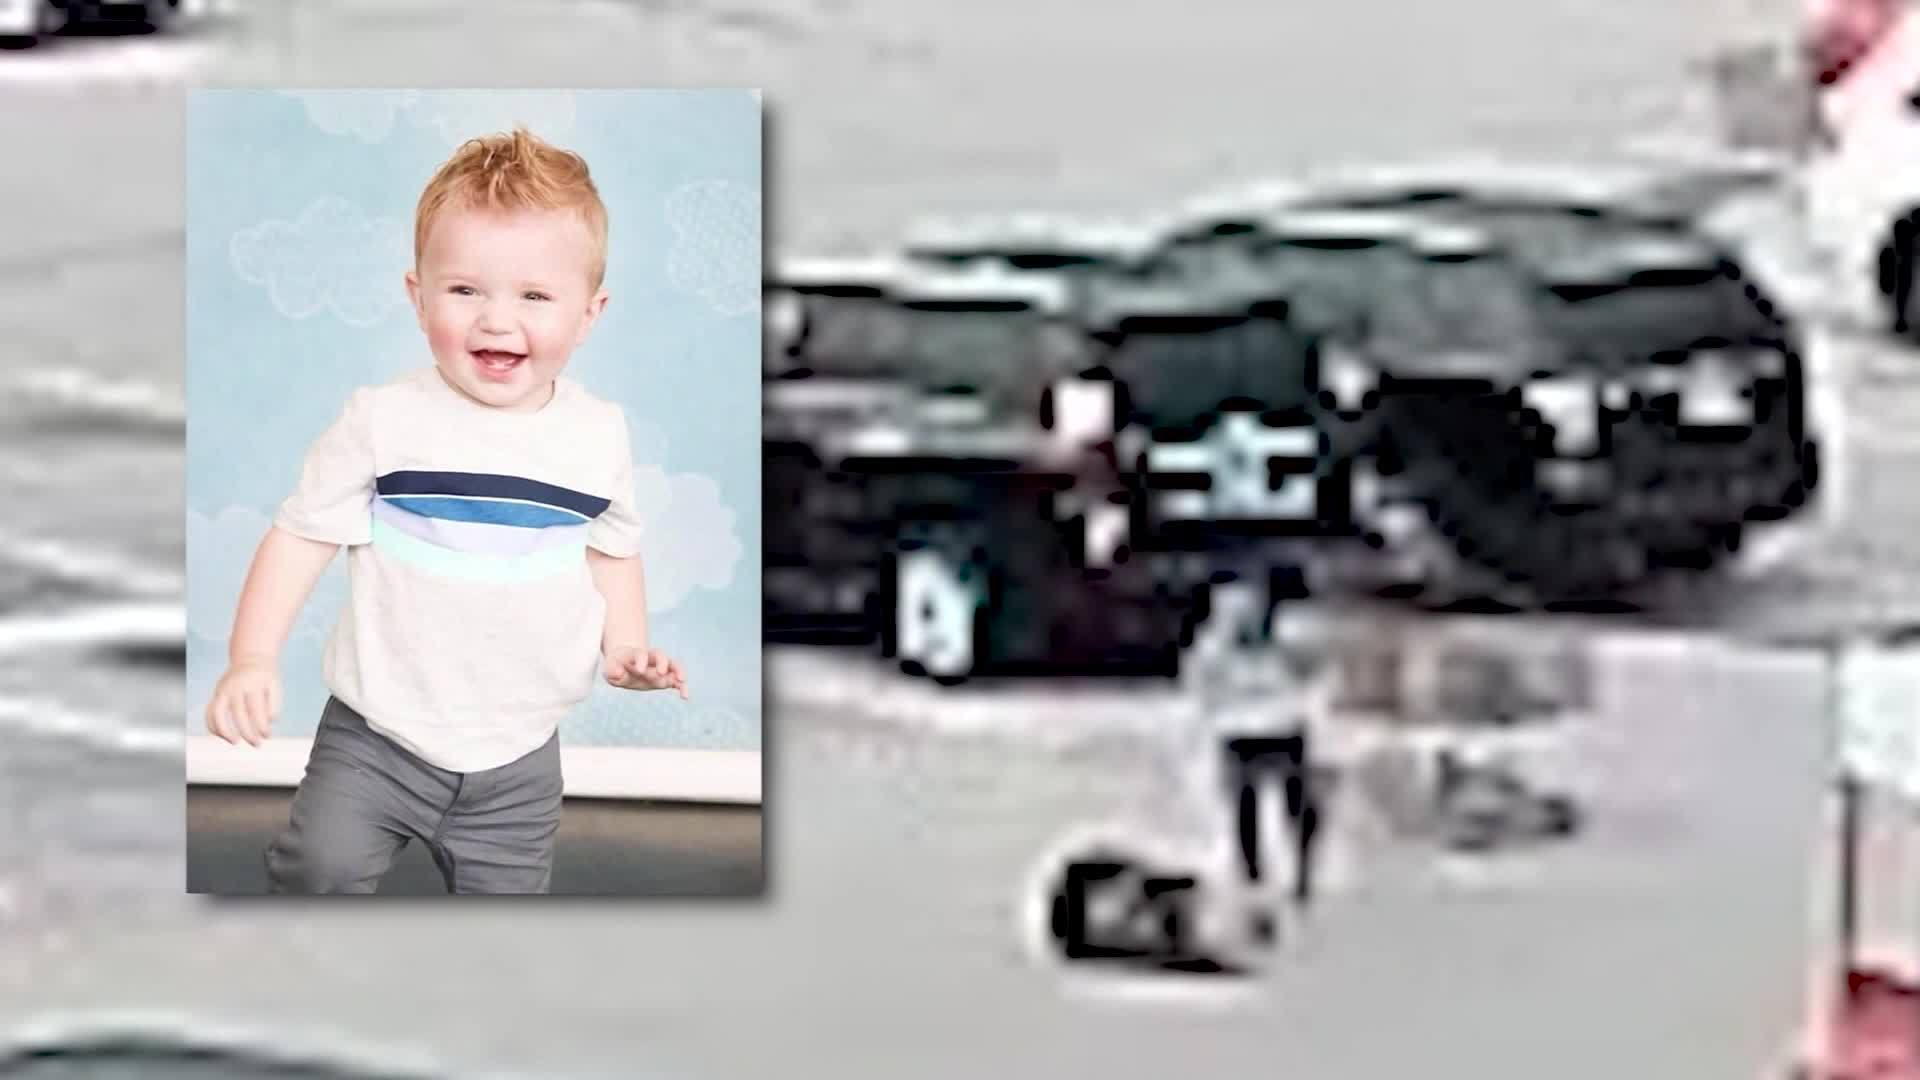 Teen_on_drugs_grabs_infant_in_car_seat_o_5_20190612092831-873704001-873704001